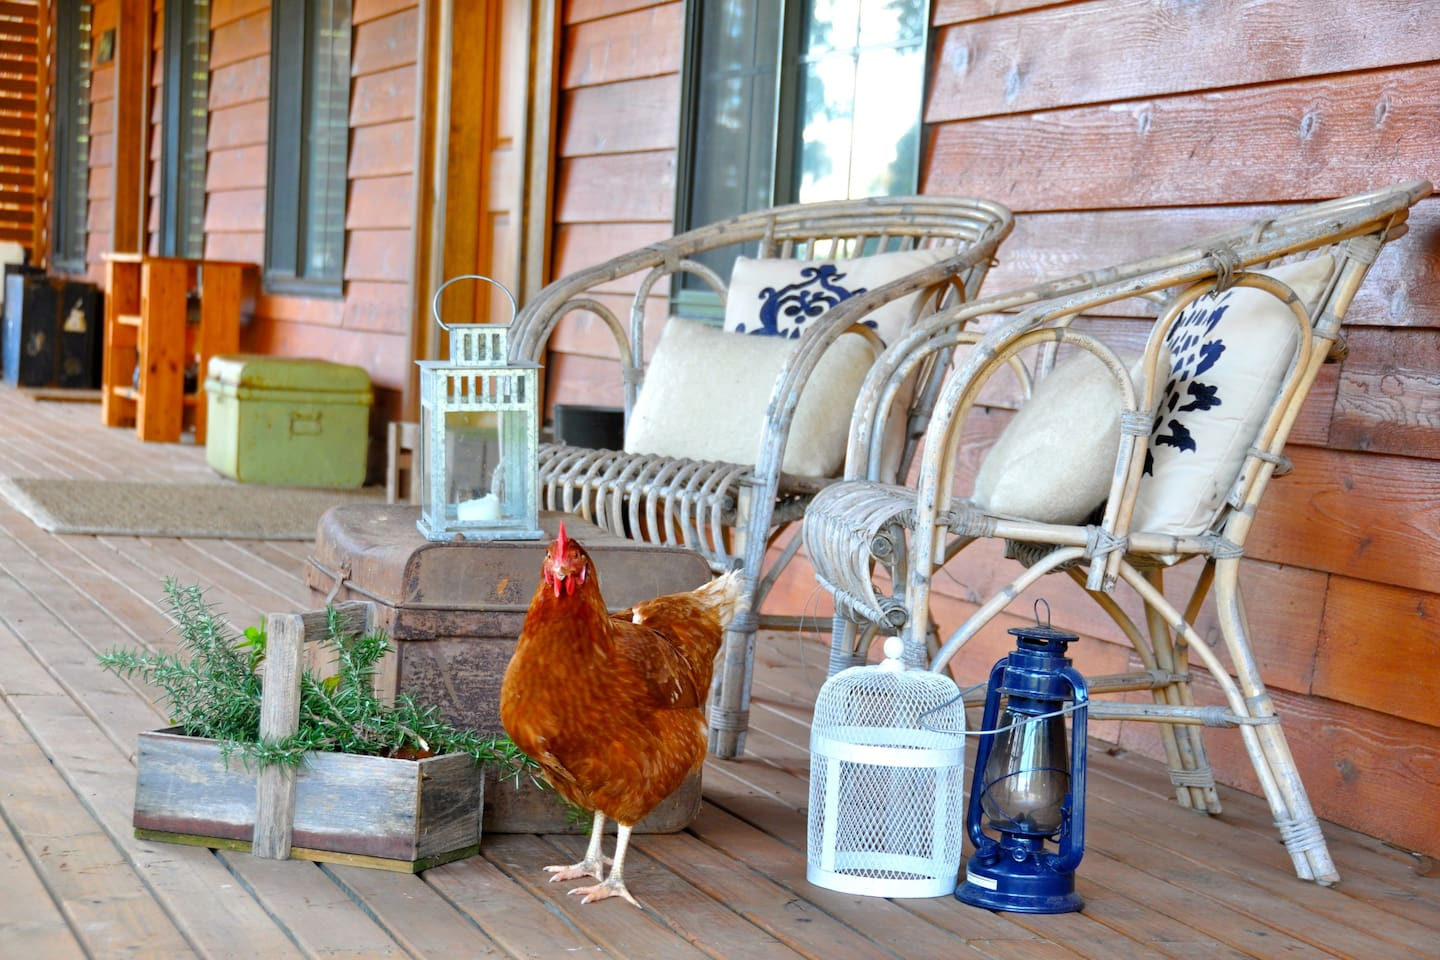 Resident chicken on front deck